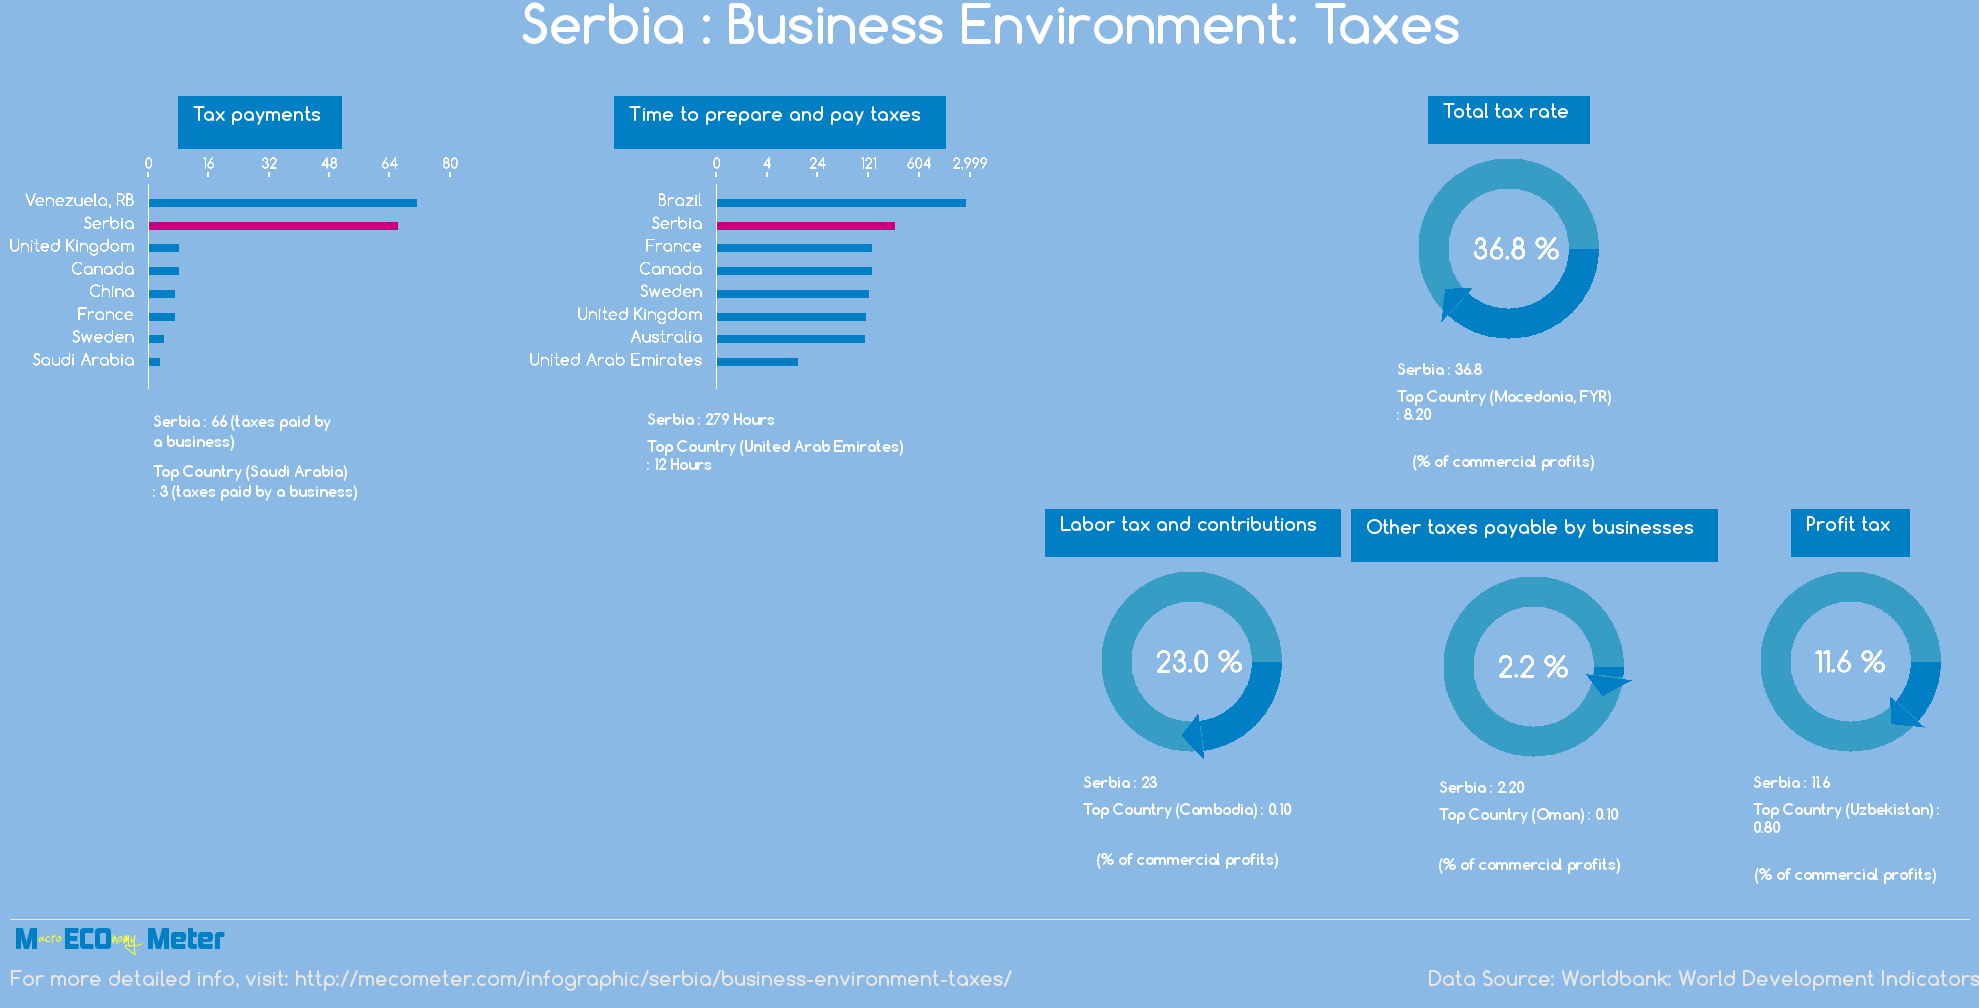 Serbia : Business Environment: Taxes